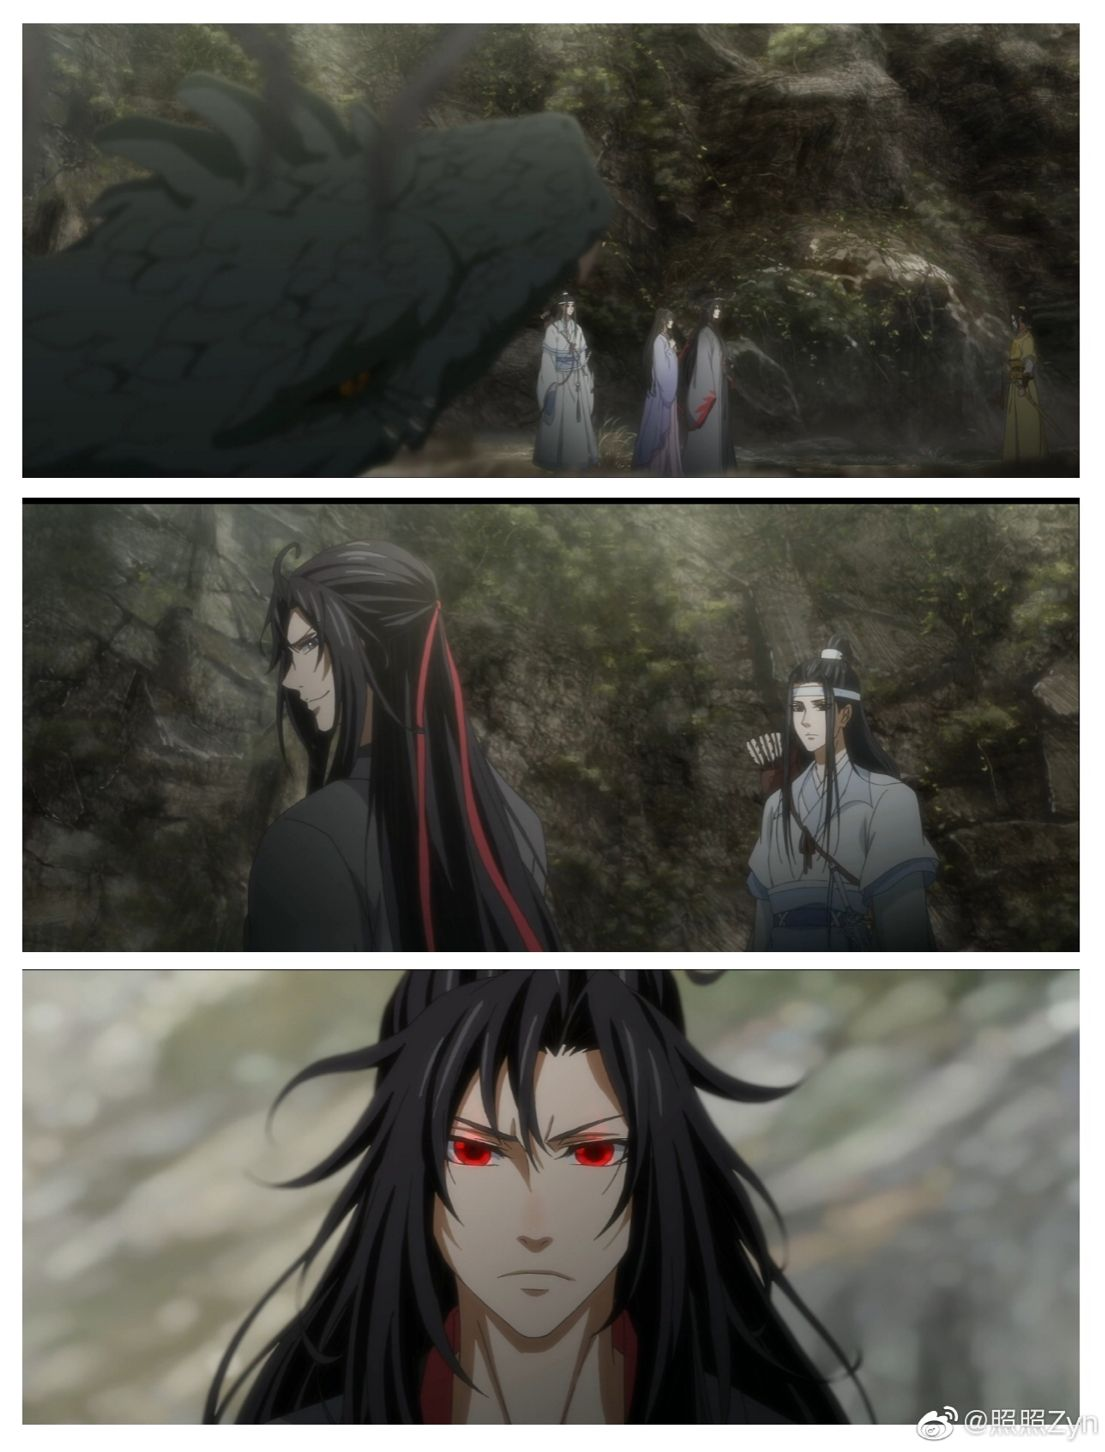 Pin by Kawaii Little Yandere on 魔道祖师&陈情令 Chinese art